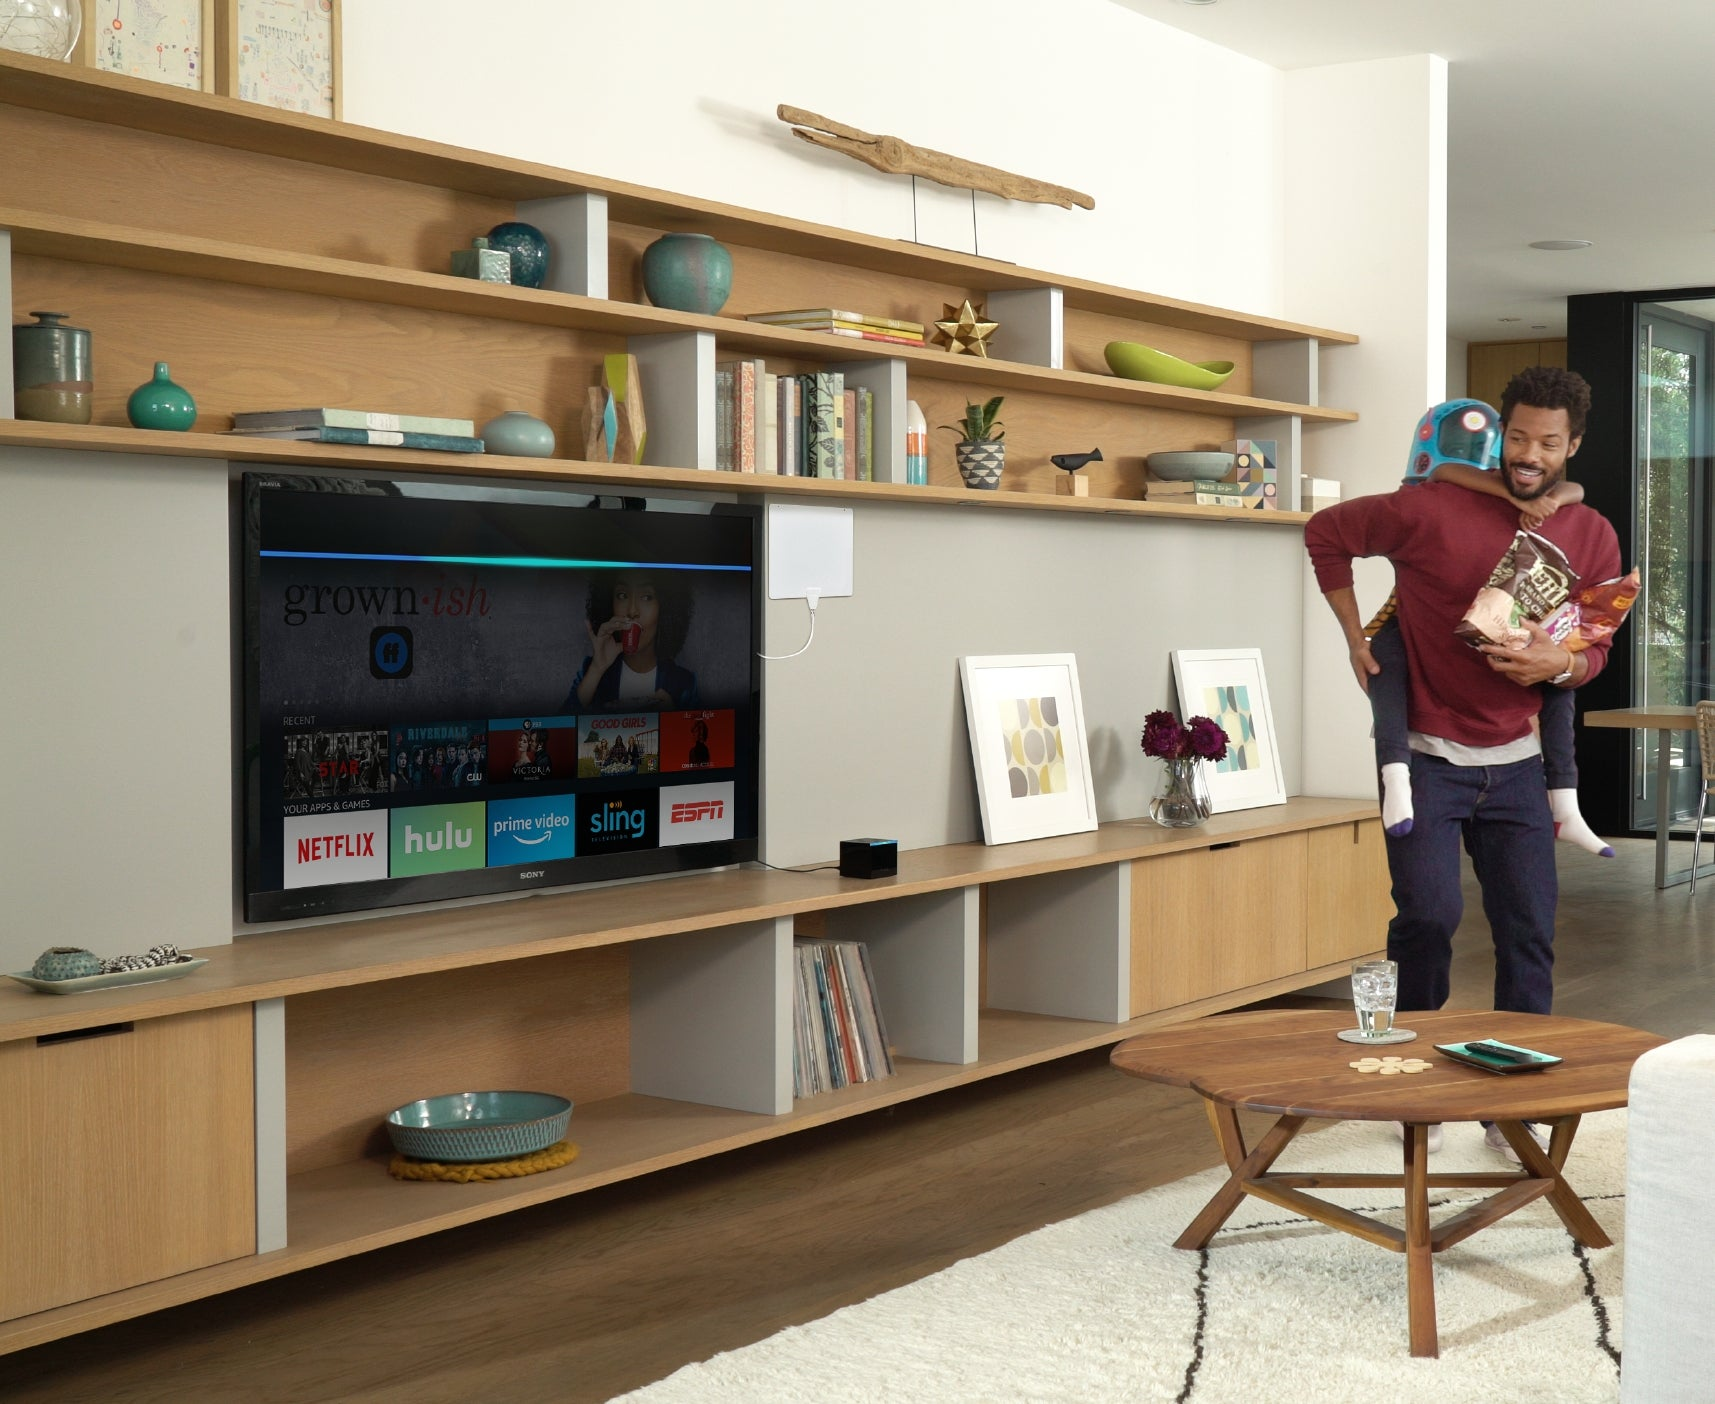 A man looking at a TV with an Alexa interface on display.